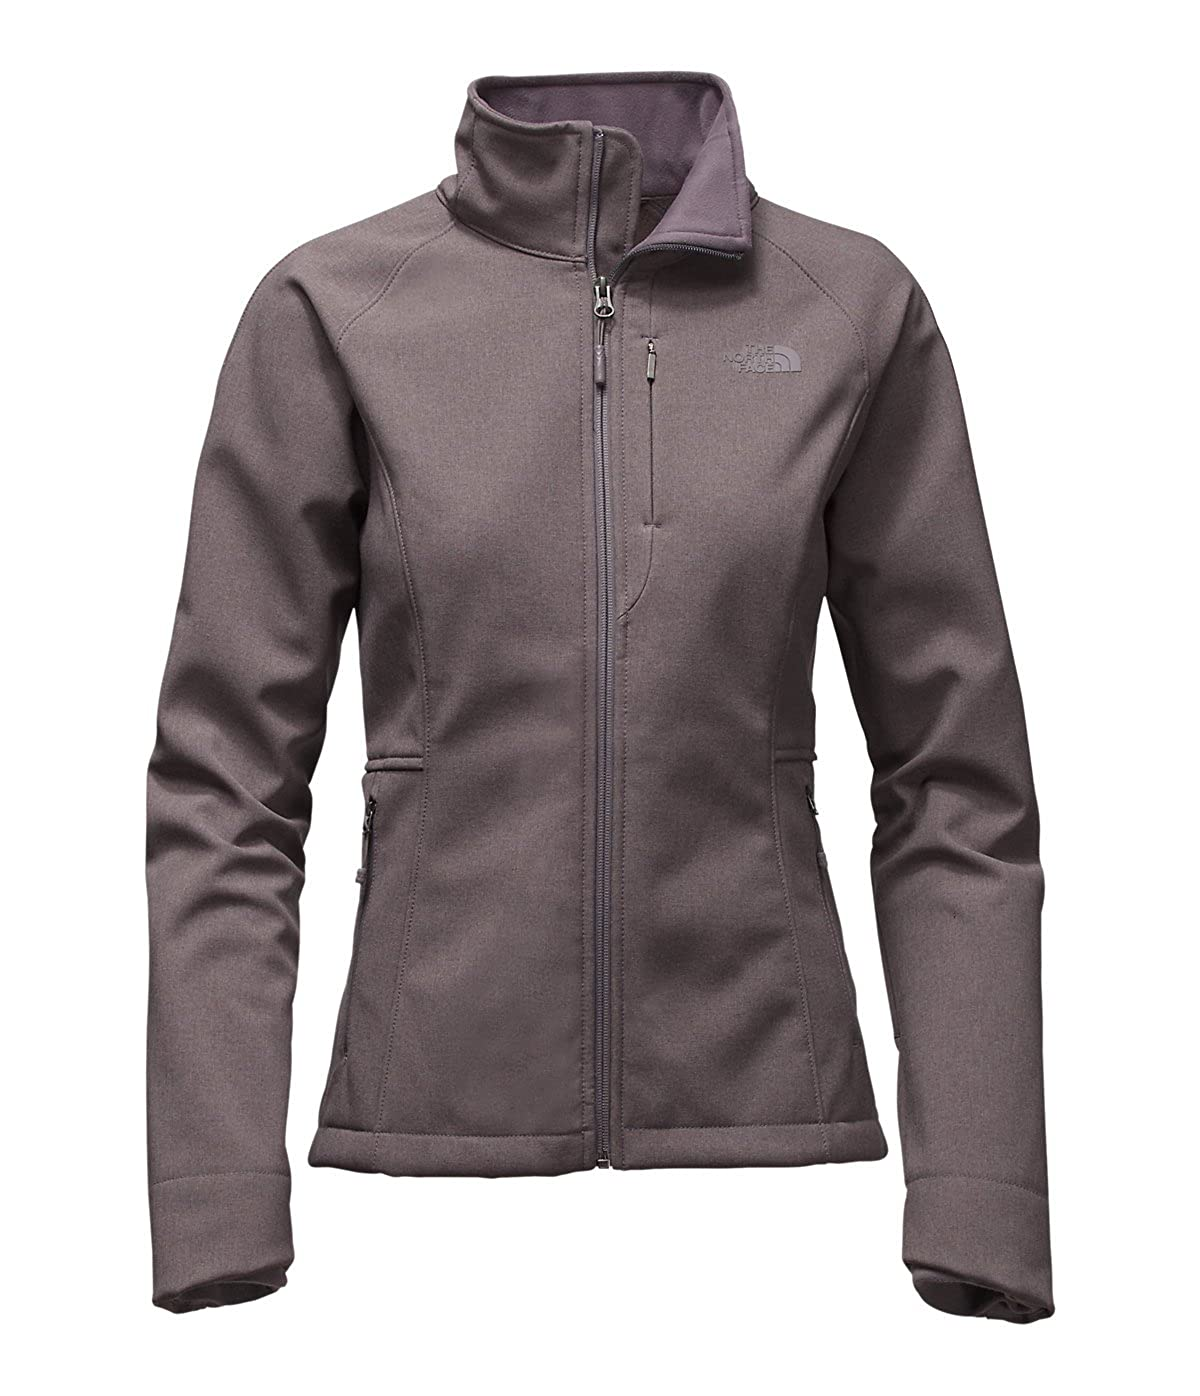 Rabbit Grey Heather The North Face Women's Apex Bionic 2 Soft Shell Jacket